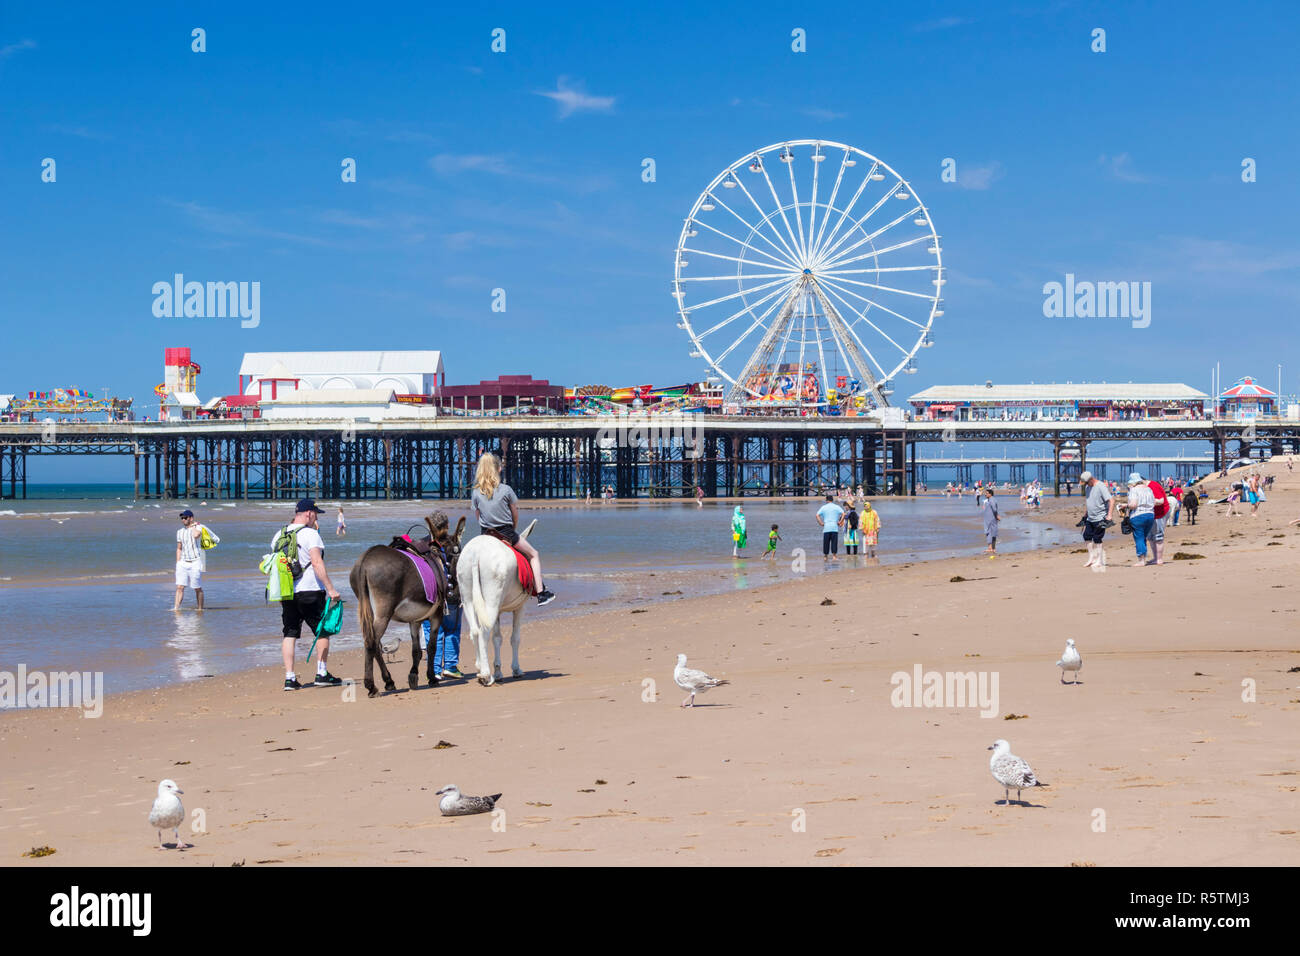 Blackpool uk Donkey rides on the beach in front of the Ferris wheel on the central pier Blackpool Lancashire England UK GB Europe Stock Photo